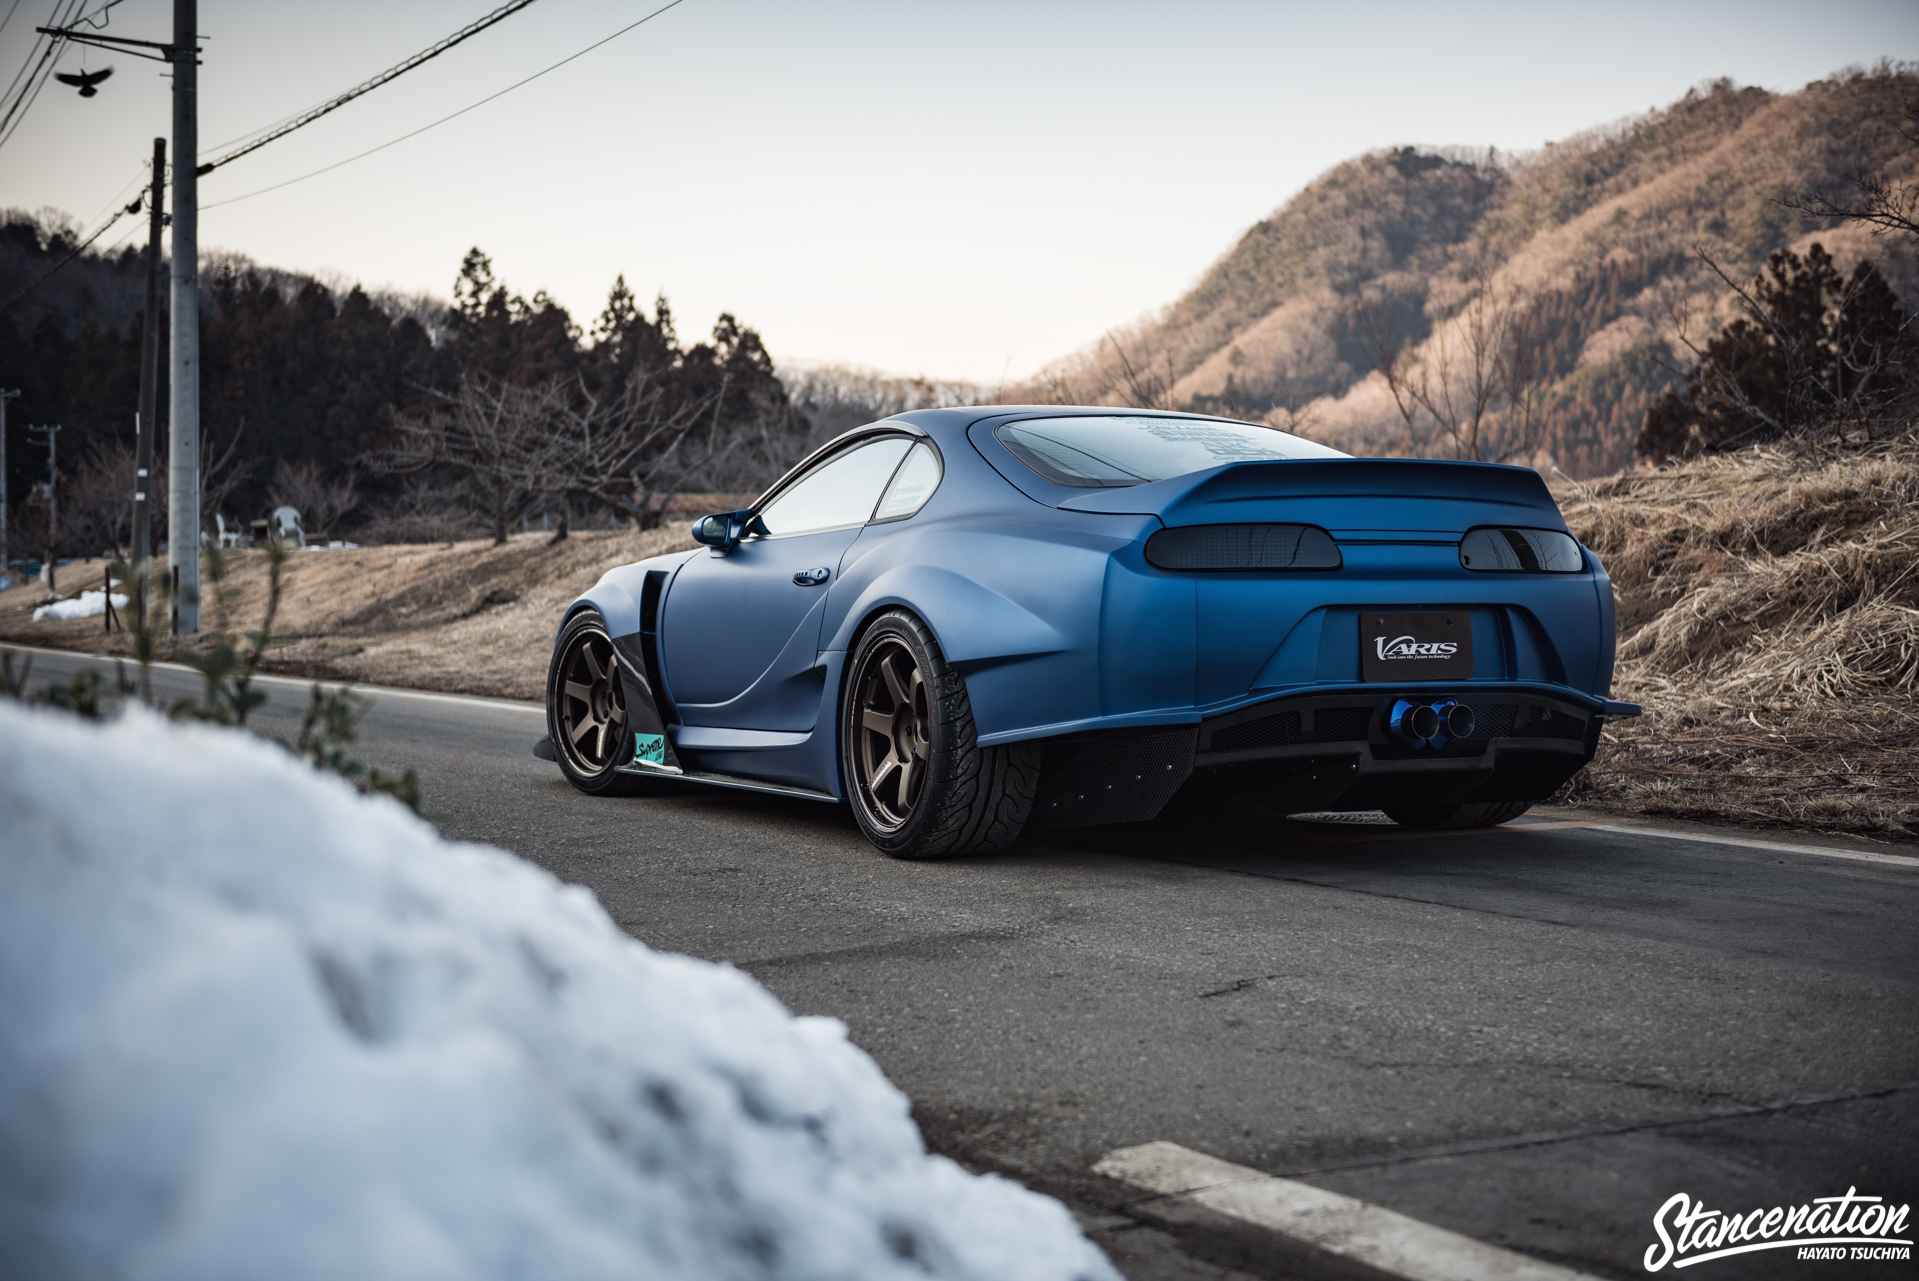 Where Are Nissans Made >> Pushing Limits // The Varis x Garage Revolver Toyota Supra | StanceNation™ // Form > Function